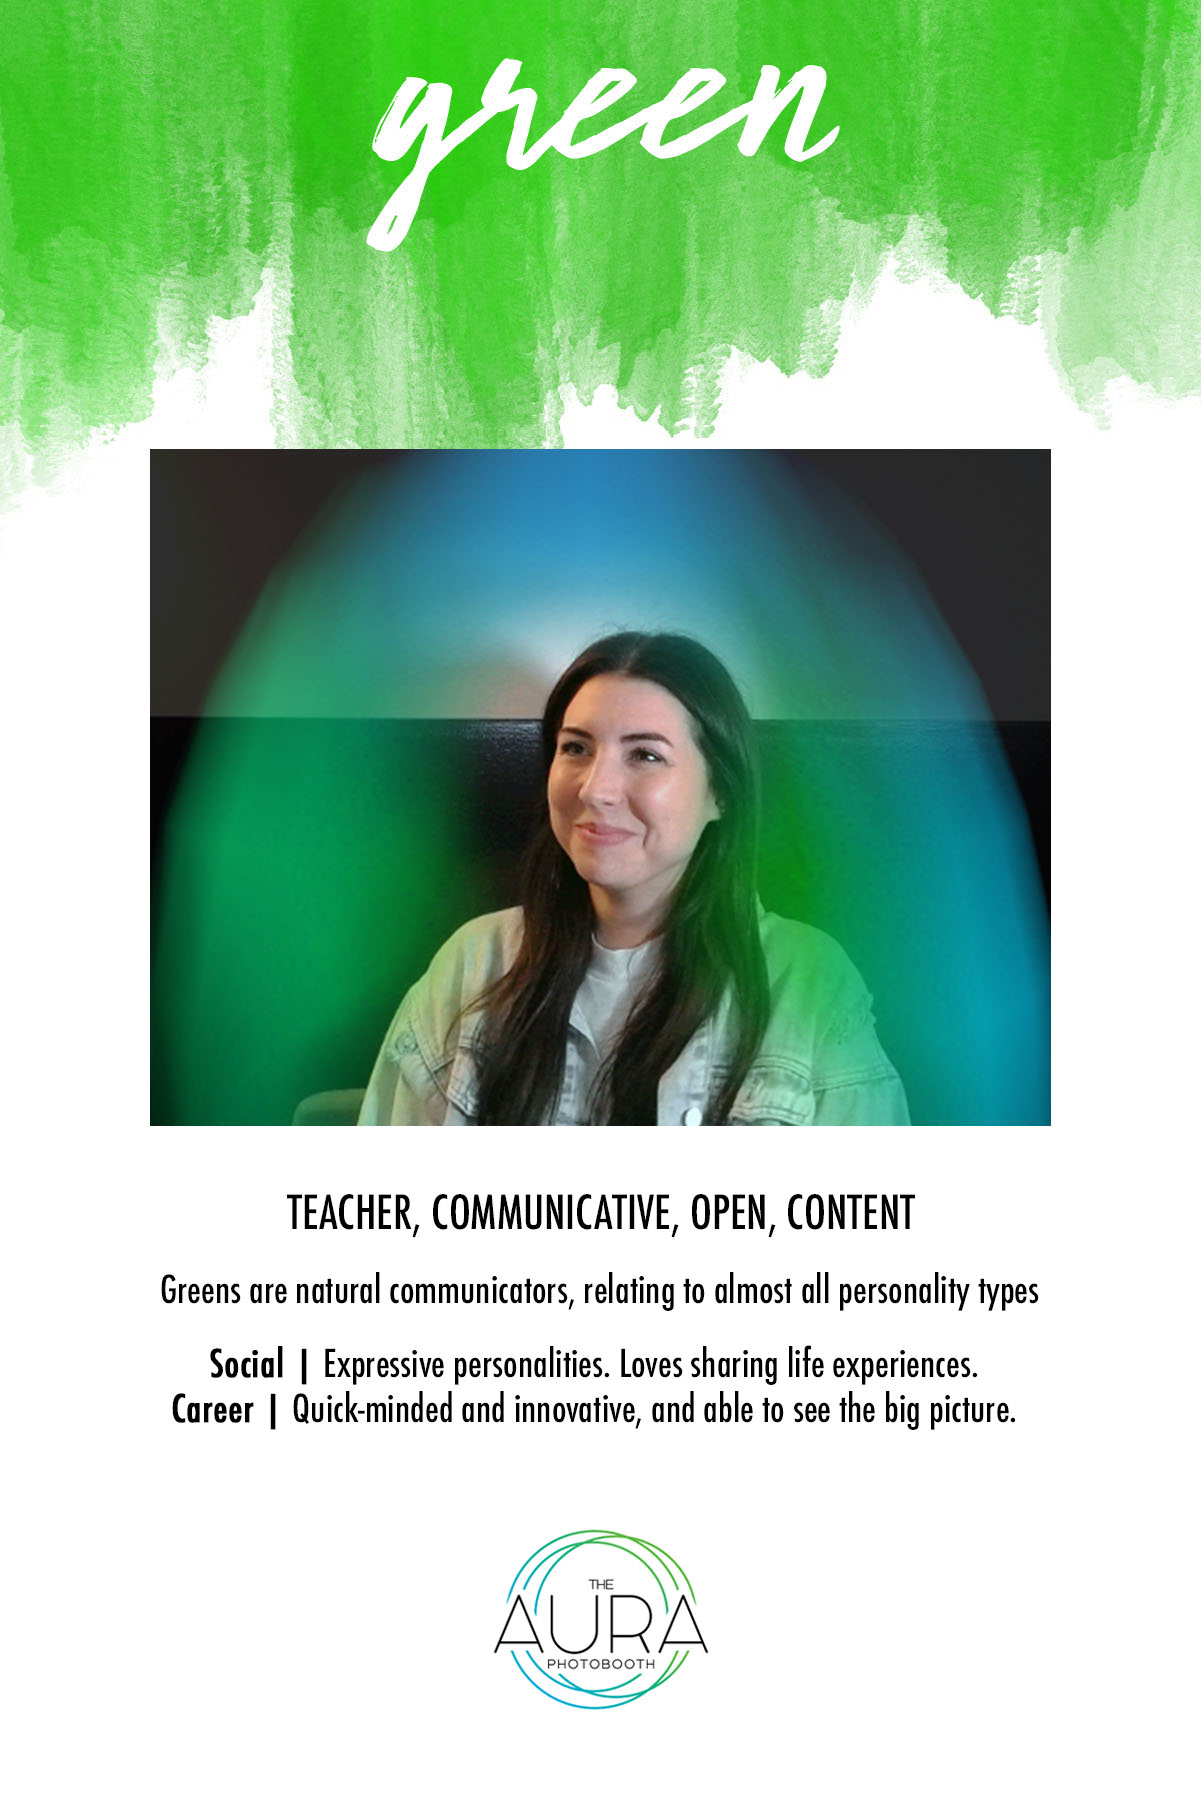 Green Aura Reading | The Aura Photobooth